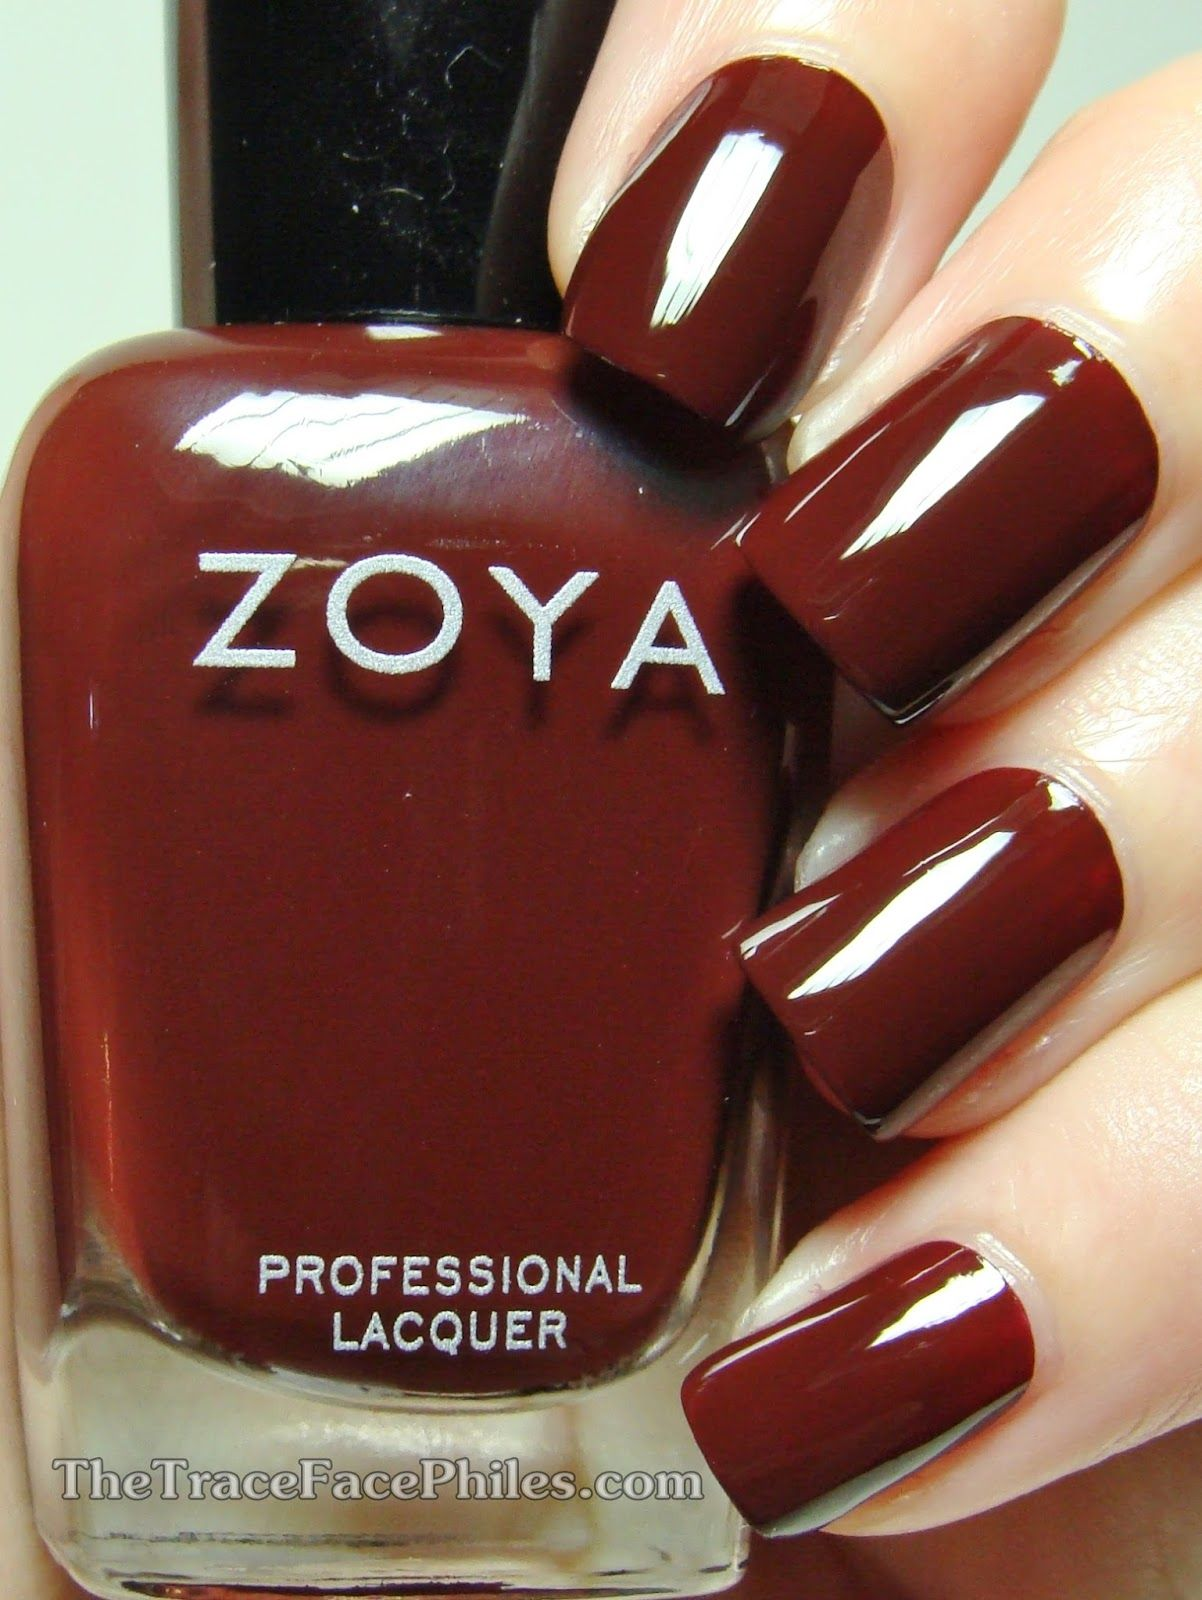 The TraceFace Philes: Zoya Entice Collection! Zoya Claire